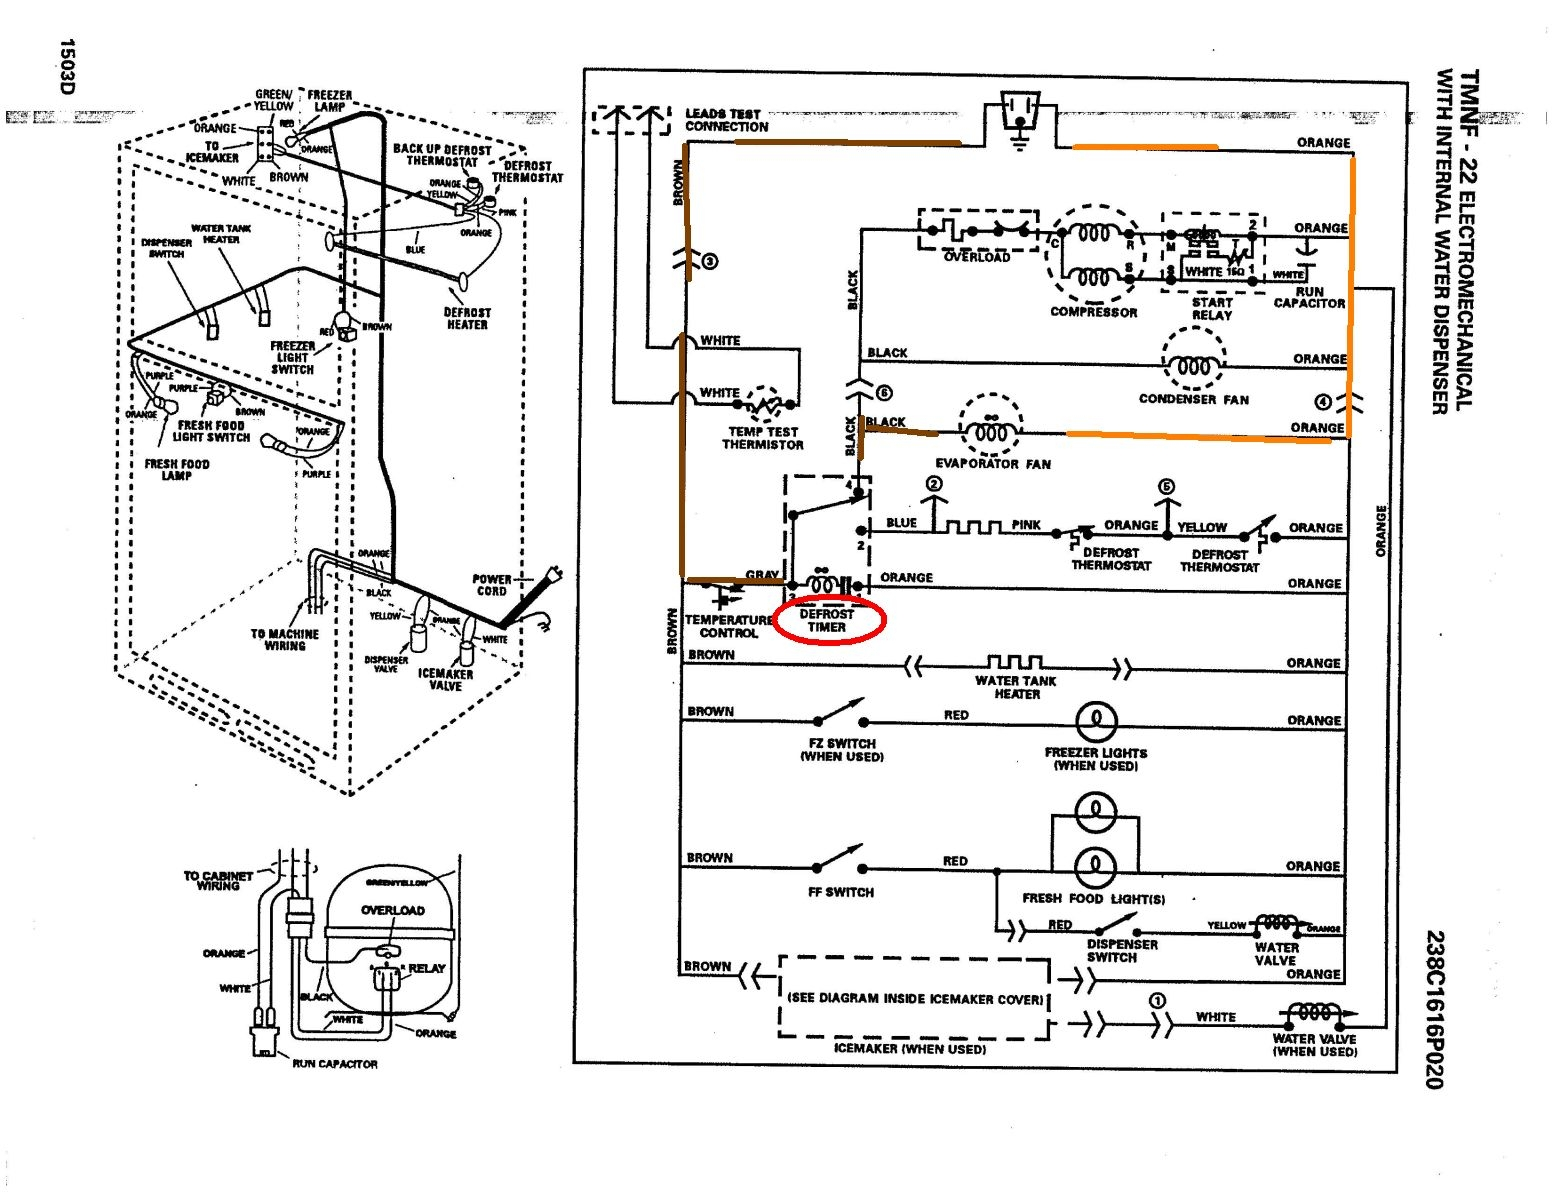 Wiring Diagram For Ge Refrigerator - Wire Diagram Here on